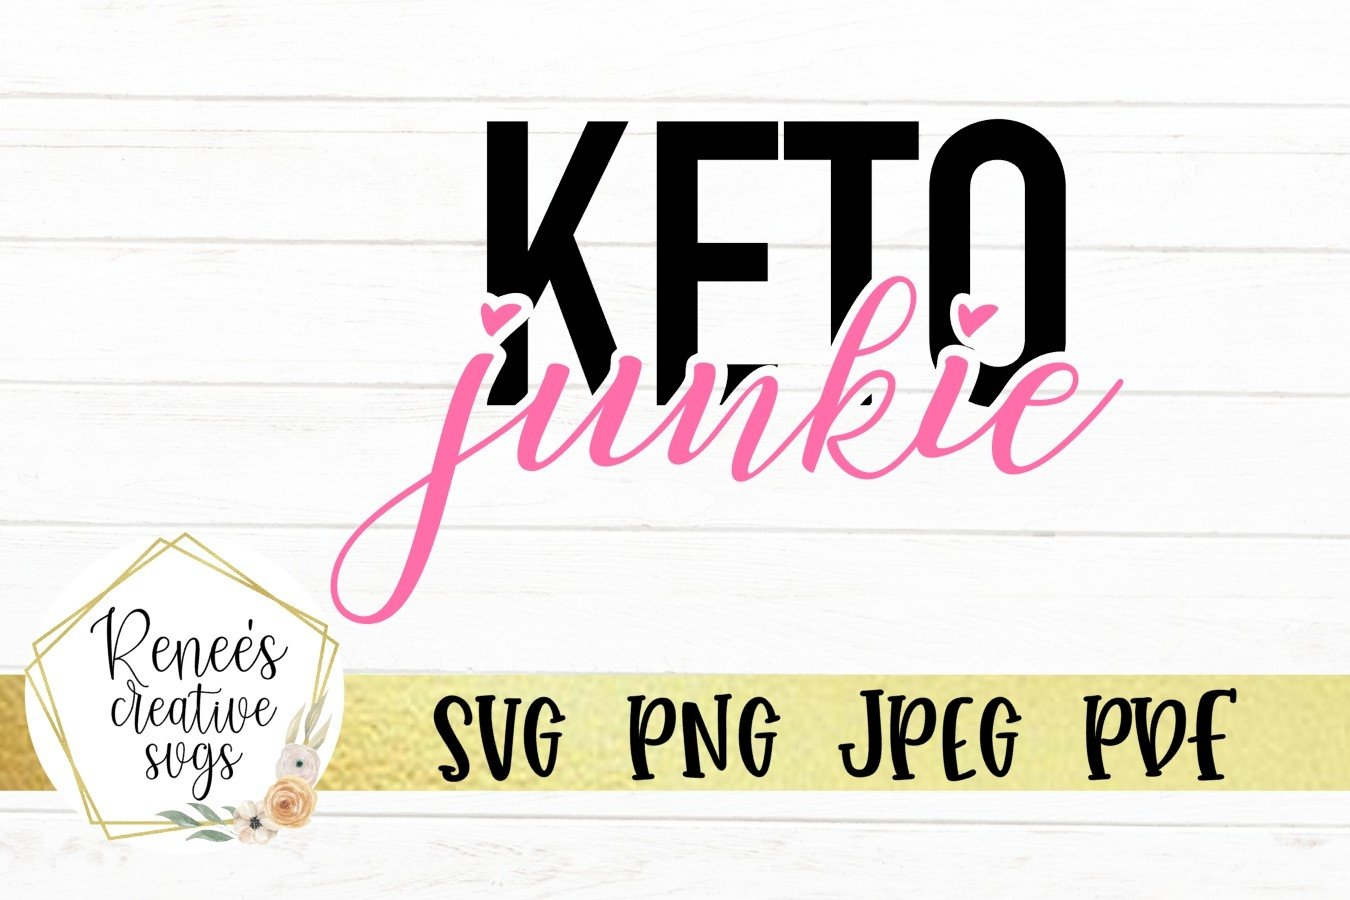 Keto Junkie   Keto diet   SVG Cutting File example image 2